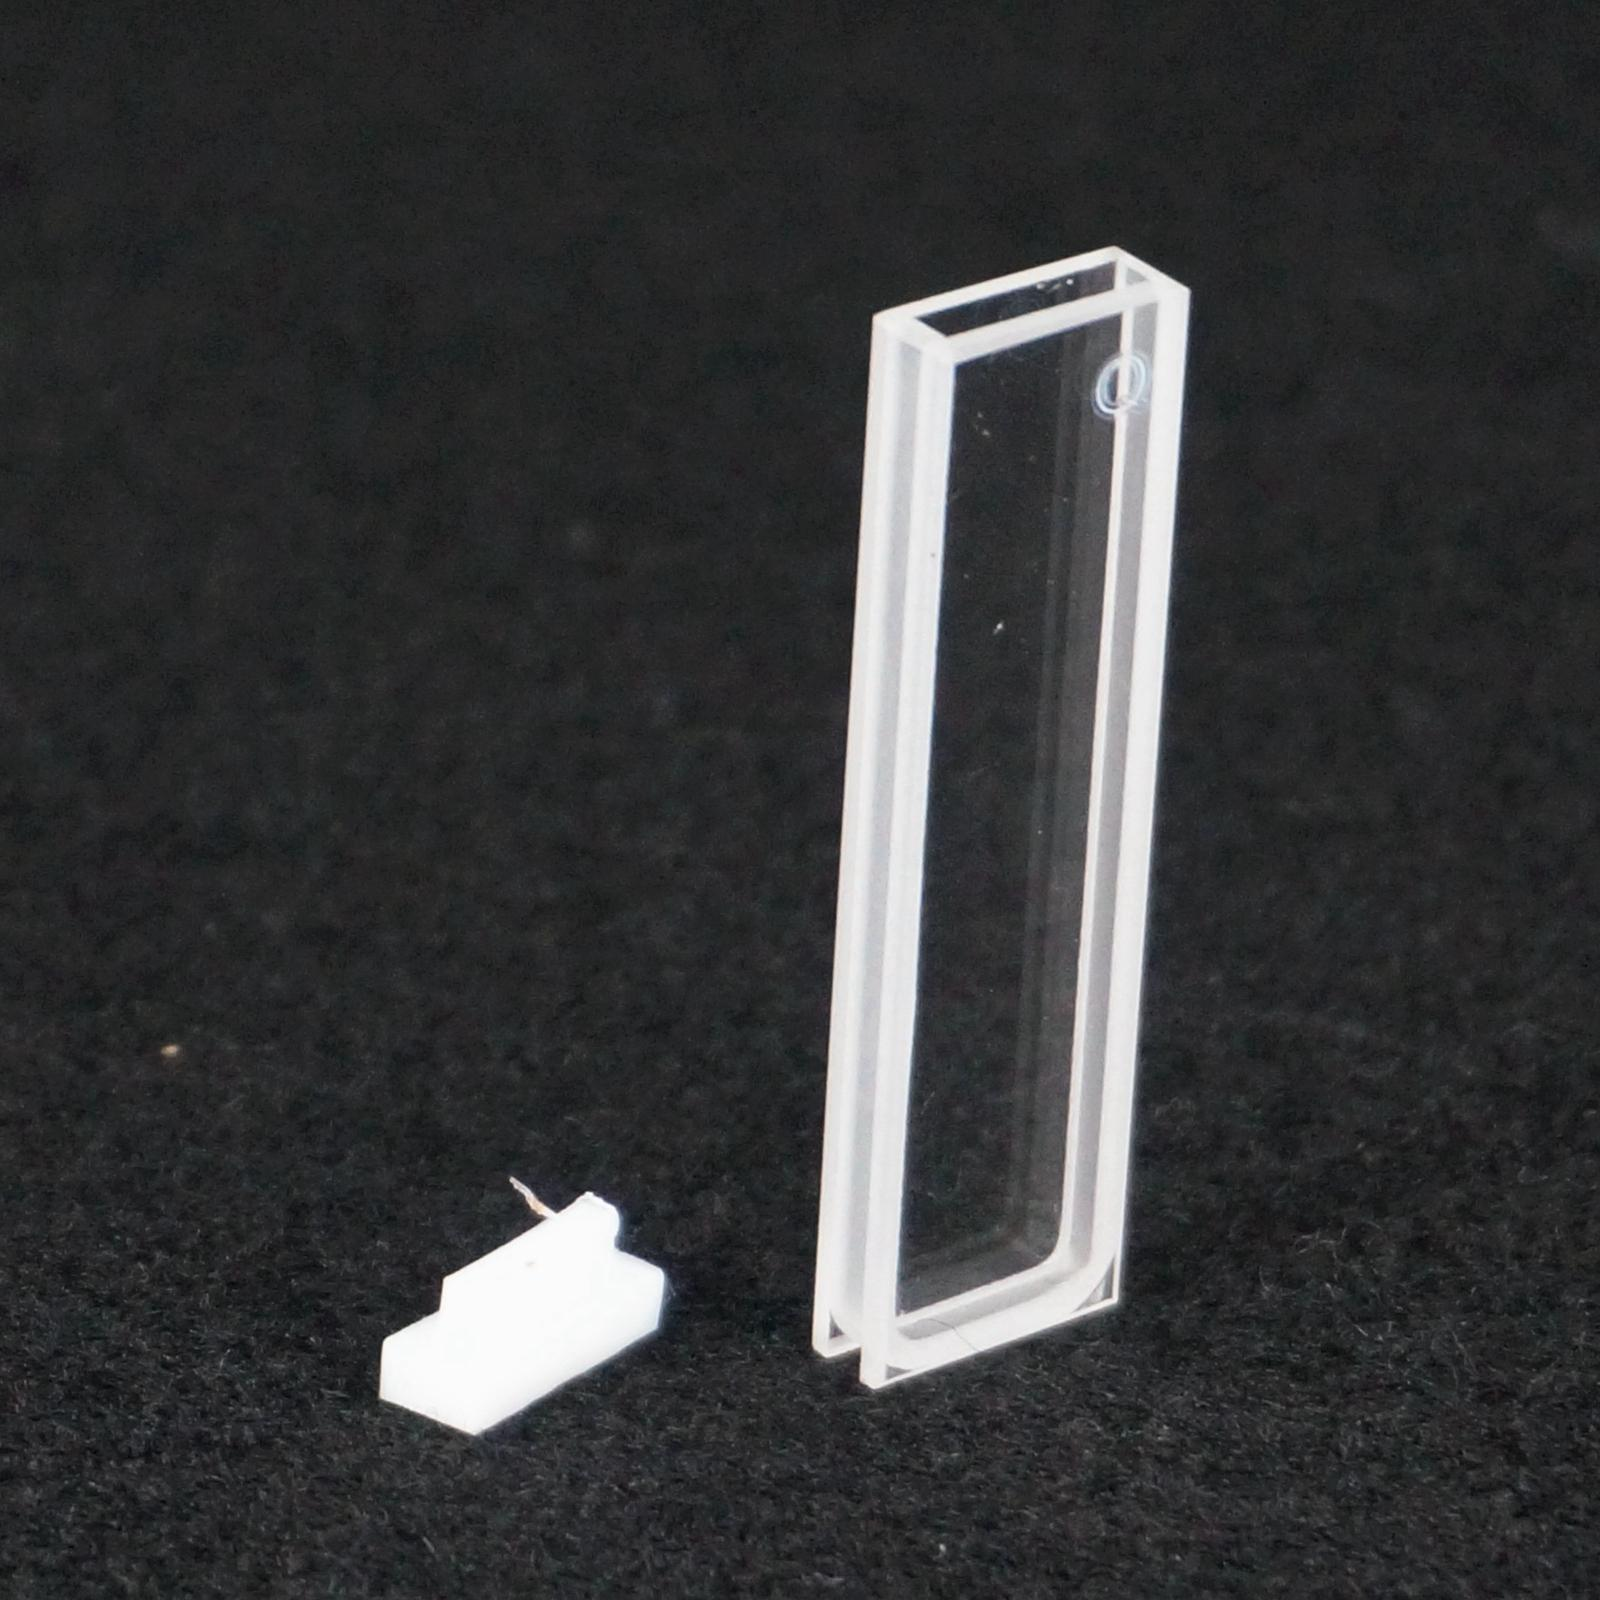 2mm Path Length JGS1 Quartz Cuvette Cell With Telfon Lid For Uv Spectrophotometers